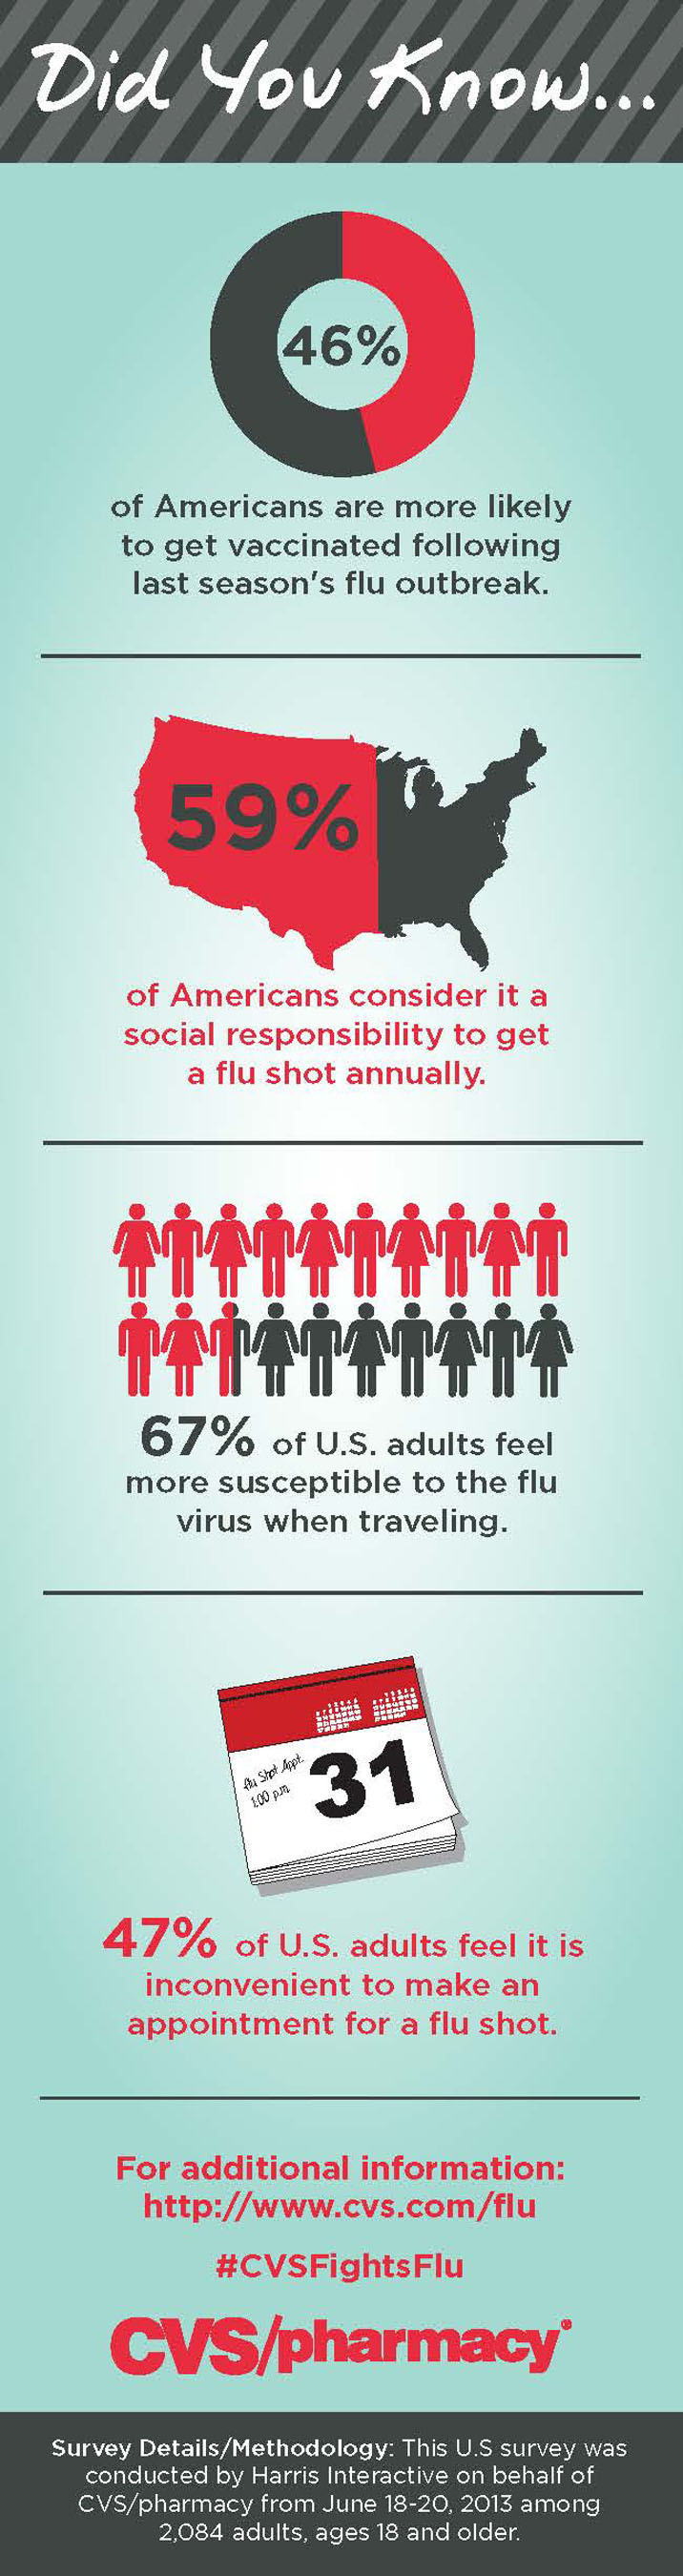 CVS/pharmacy Consumer Survey Finds Less than Half of Americans are More Likely to Get Vaccinated